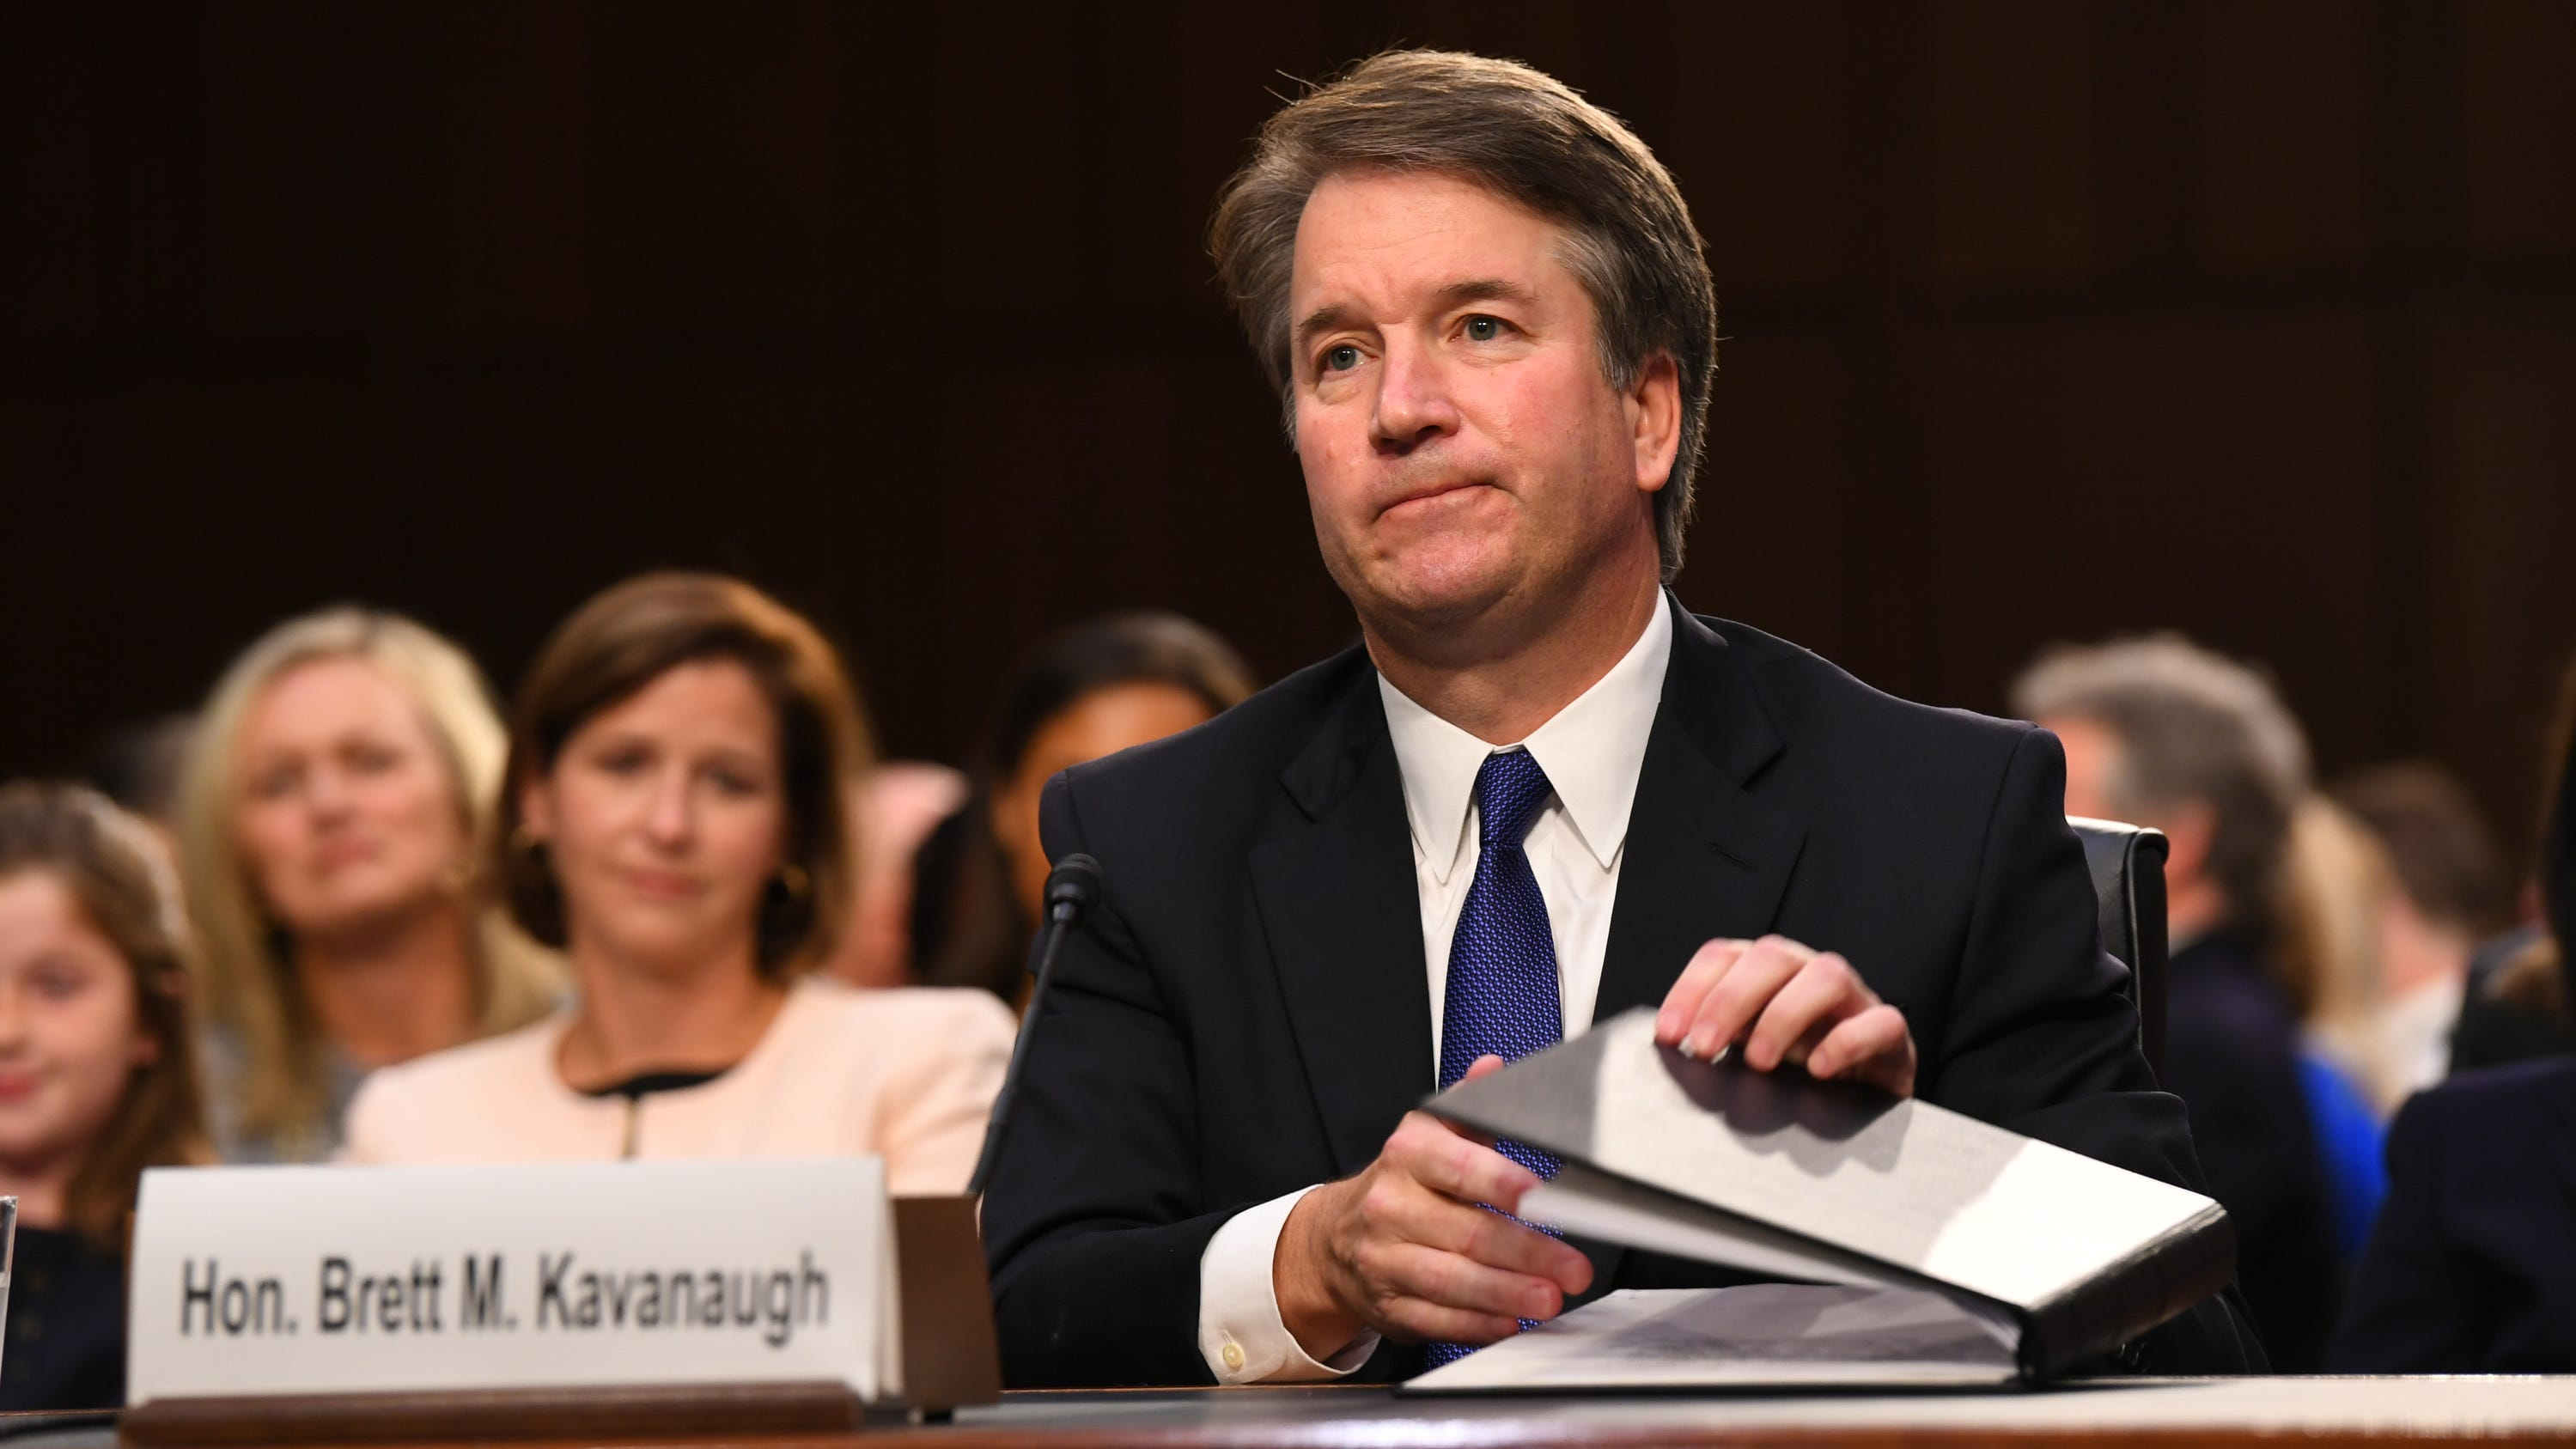 9/4/18 4:53:46 PM -- Washington, DC, U.S.A  -- Supreme Court Associate Justice nominee Brett Kavanaugh appears before the Senate Judiciary Committee during his confirmation hearing on Sept. 4, 2018 in Washington. Kavanaugh was nominated by President Donald Trump to replace Justice Anthony Kennedy,who retired from the Supreme Court in July.  --    Photo by Jack Gruber, USA TODAY Staff ORG XMIT:  JG 137433 Kavanaugh Confir 9/4/2018 (Via OlyDrop)